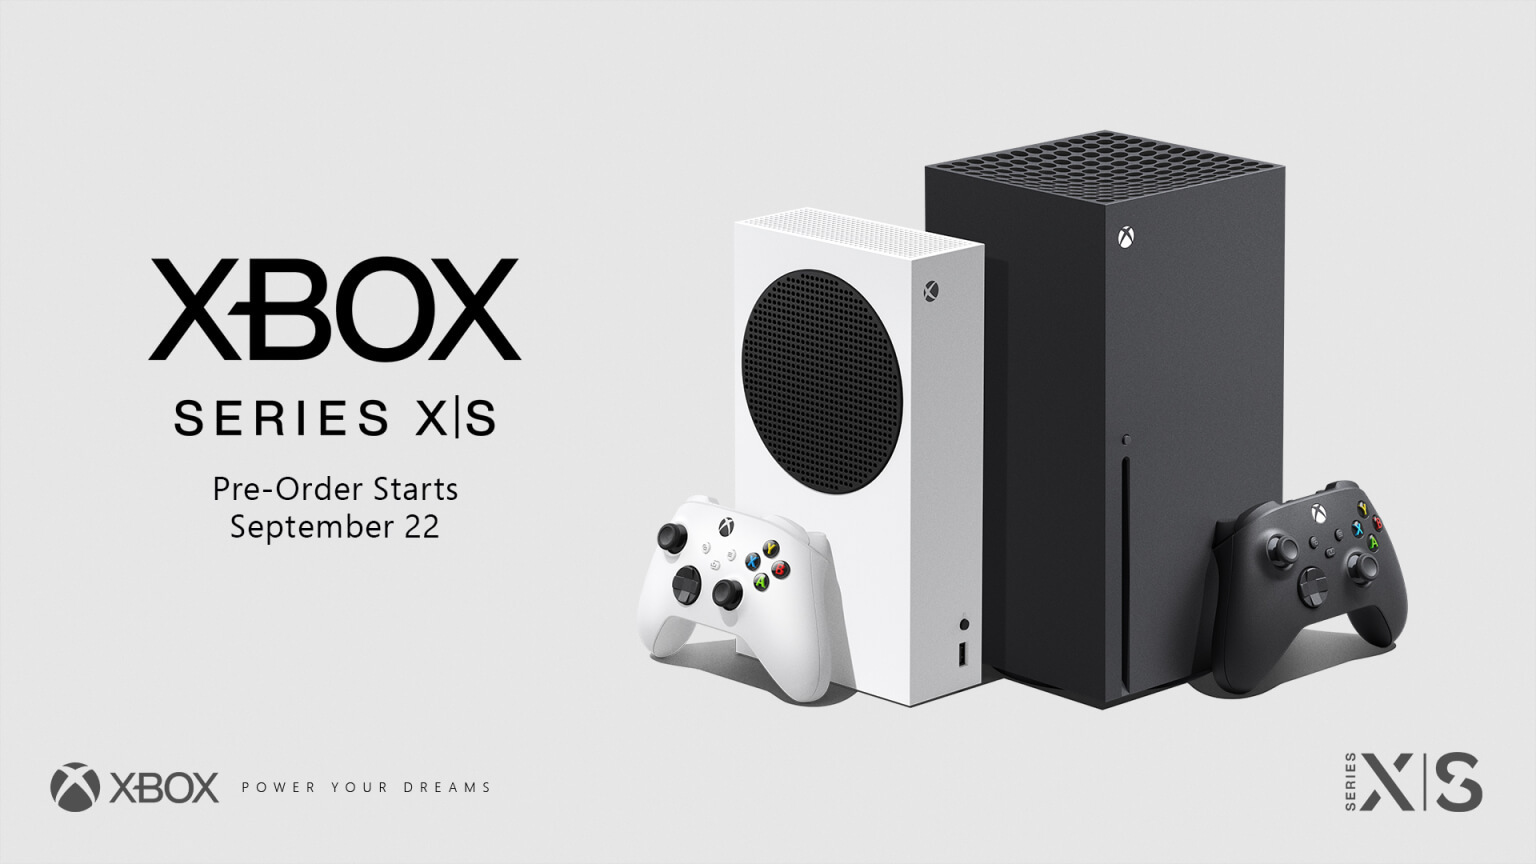 Xbox Series X and Xbox Series pre-orders go live on September 22